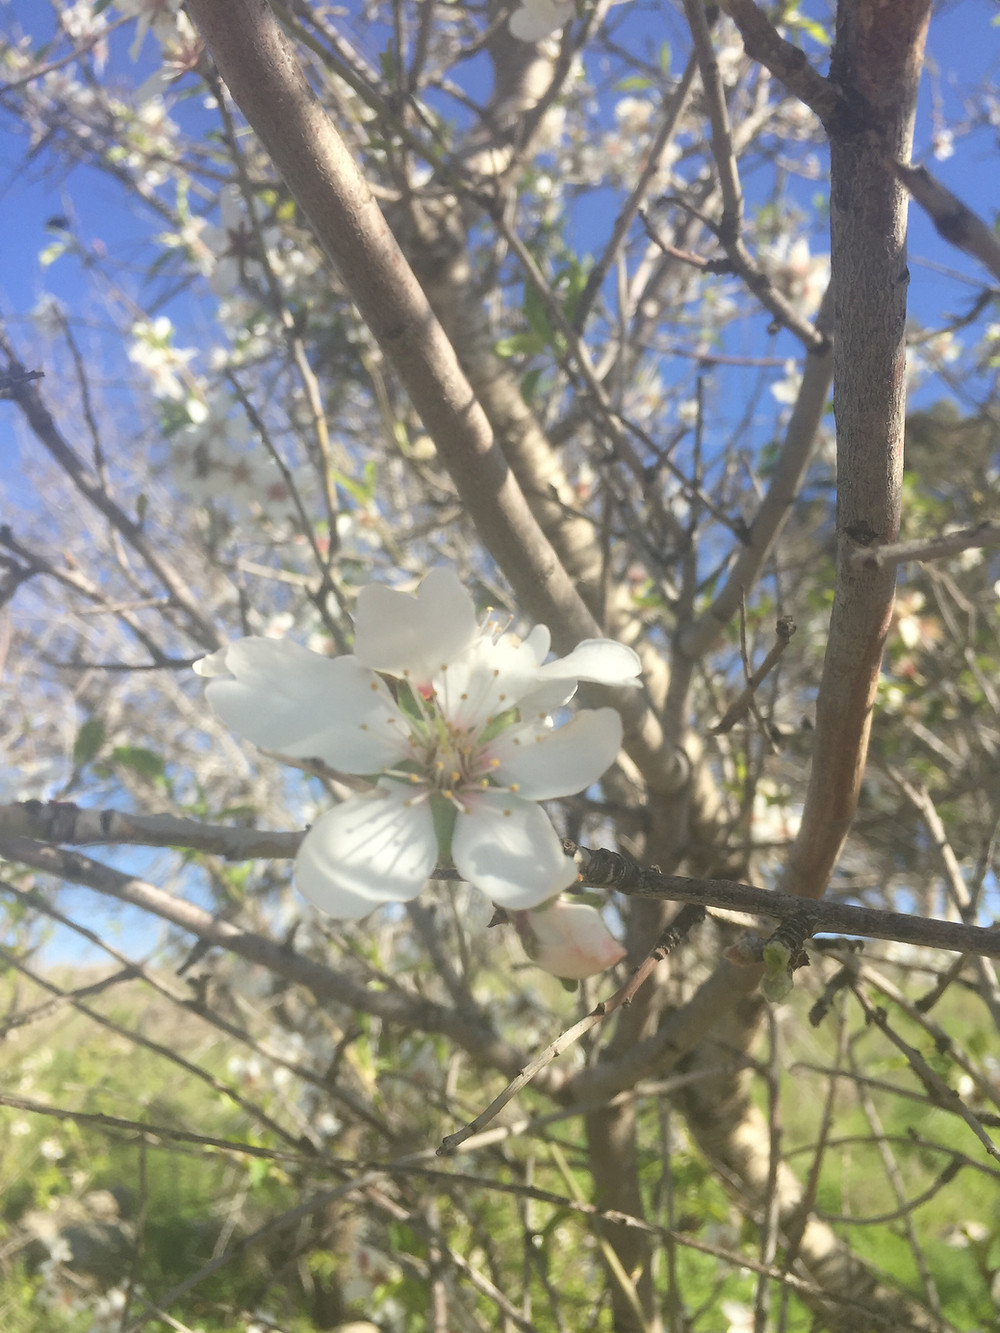 An almond blossom in Israel, mid-February